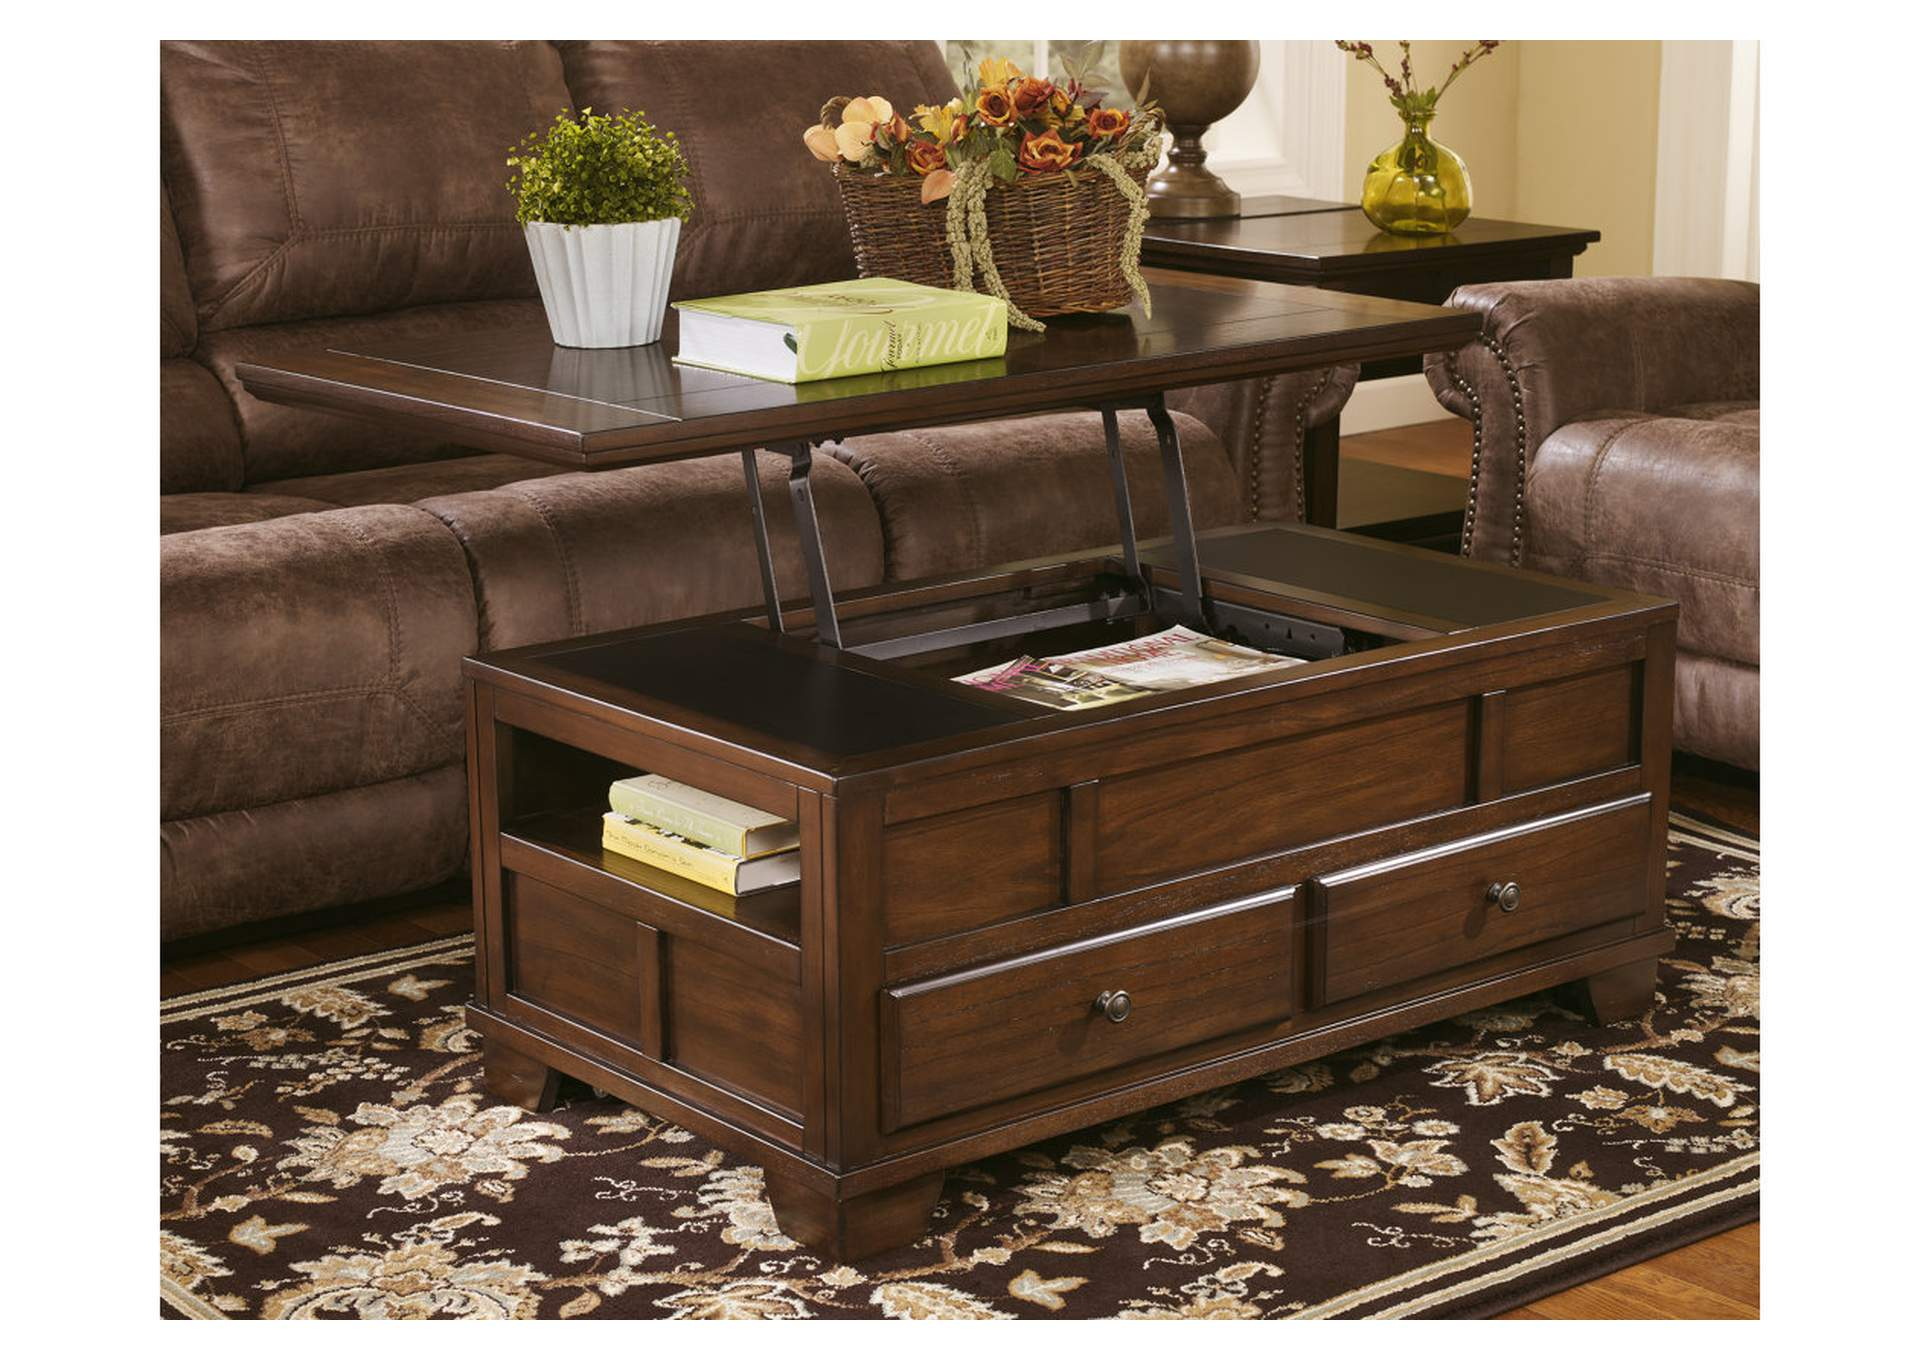 Gatley Medium Brown Lift Top Coffee Table,48 Hour Quick Ship